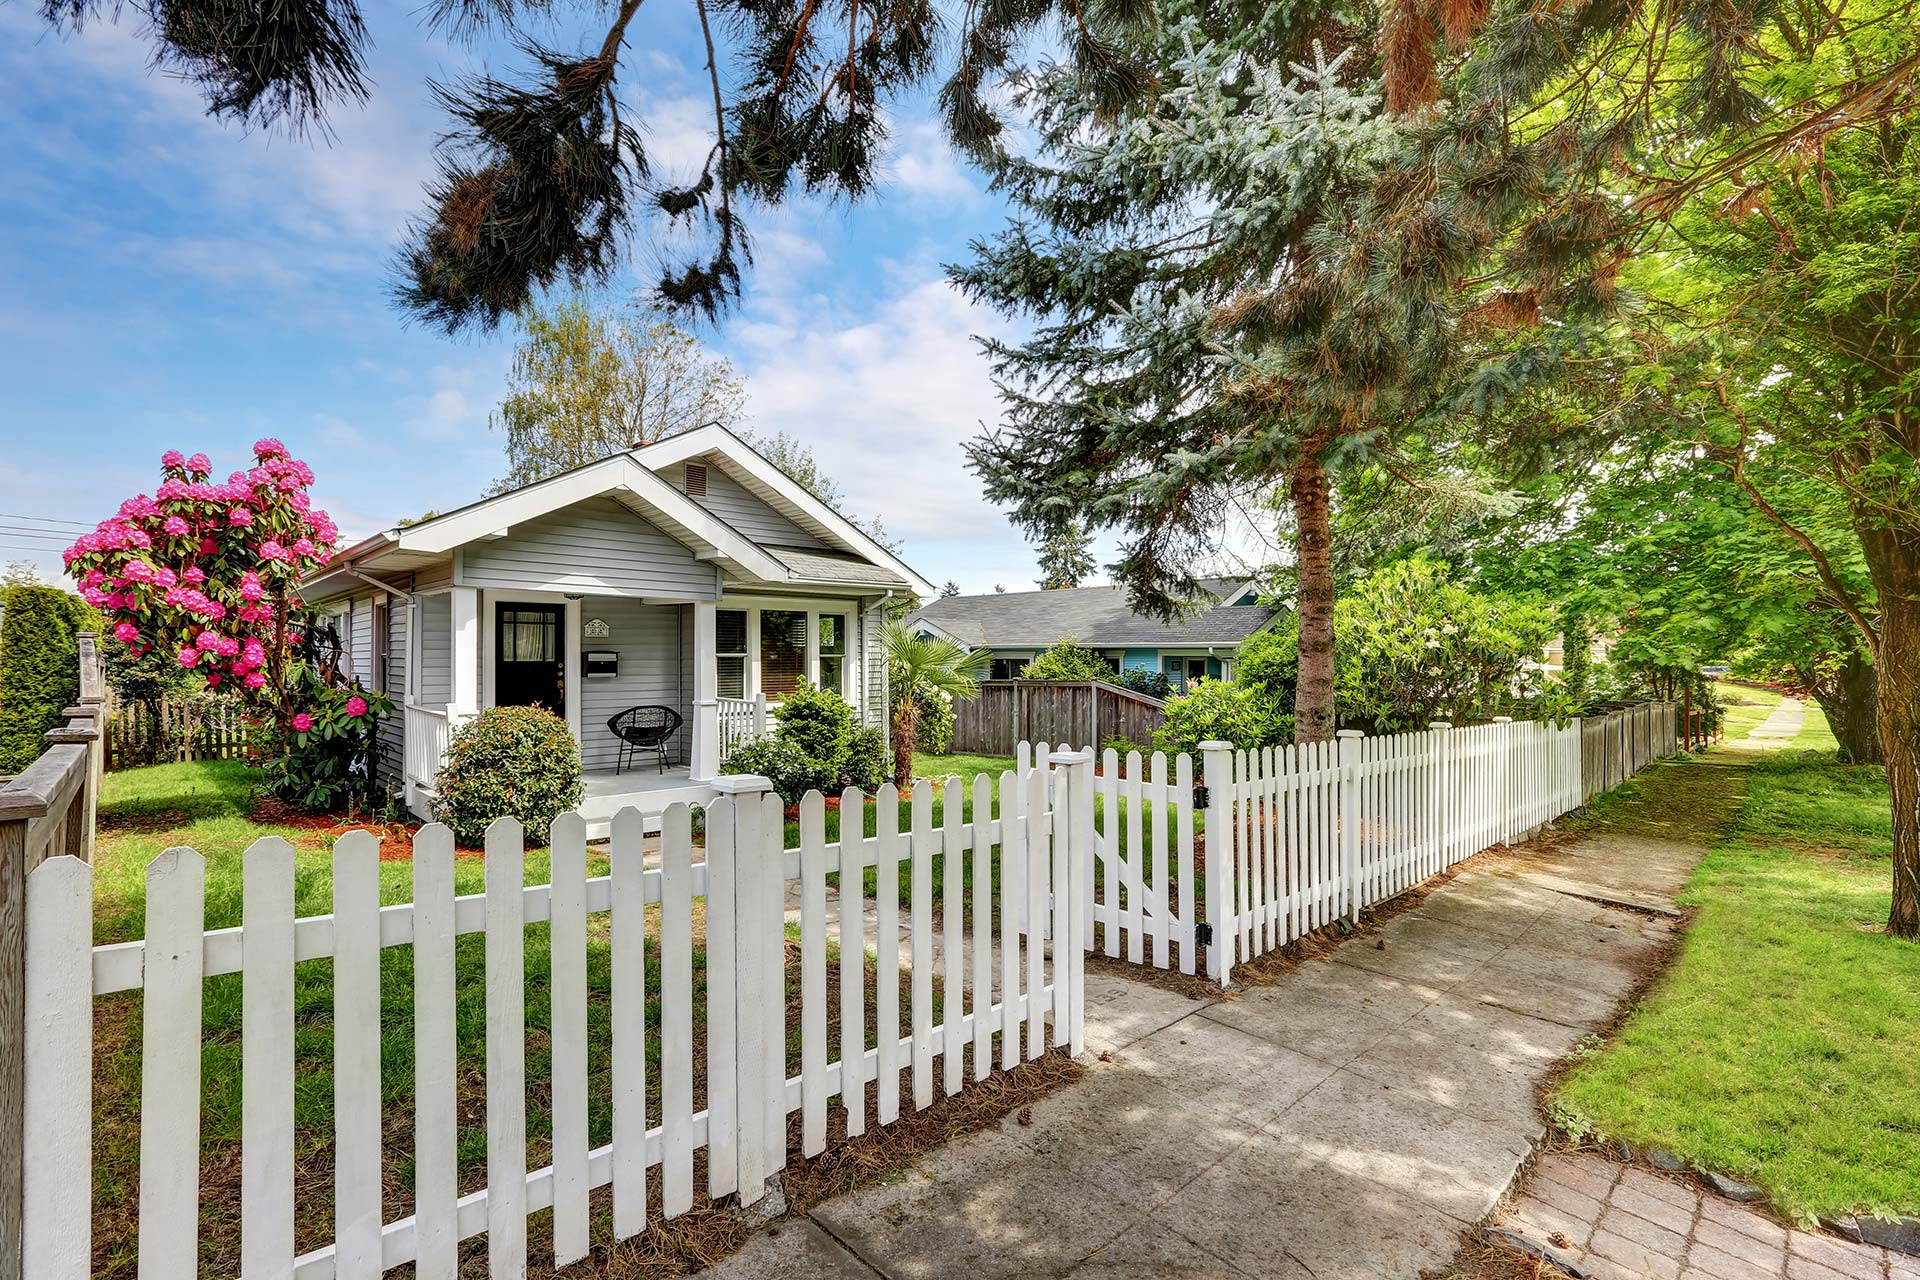 cute cottage home with picket fence